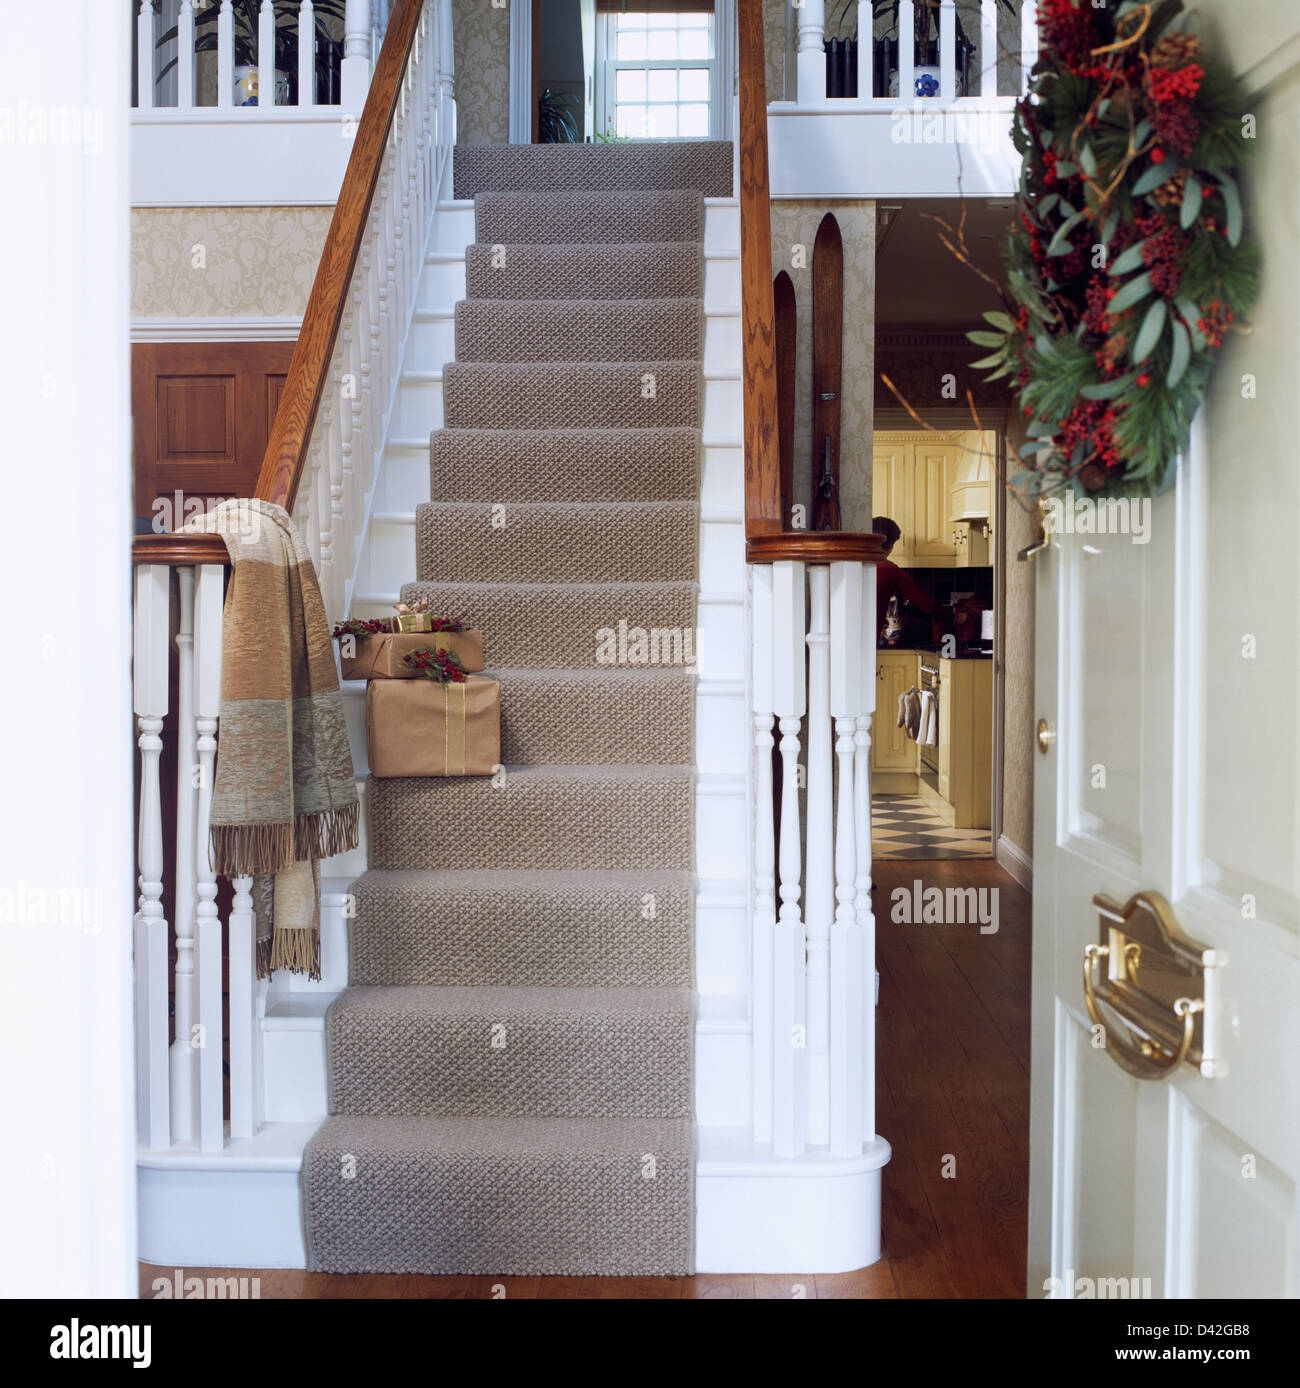 Grey Carpet On White Staircase With Wrapped Christmas Presents In | White Stairs With Carpet | Black | Chic | Victorian Staircase Carpet | Hardwood | Pinstripe Grey